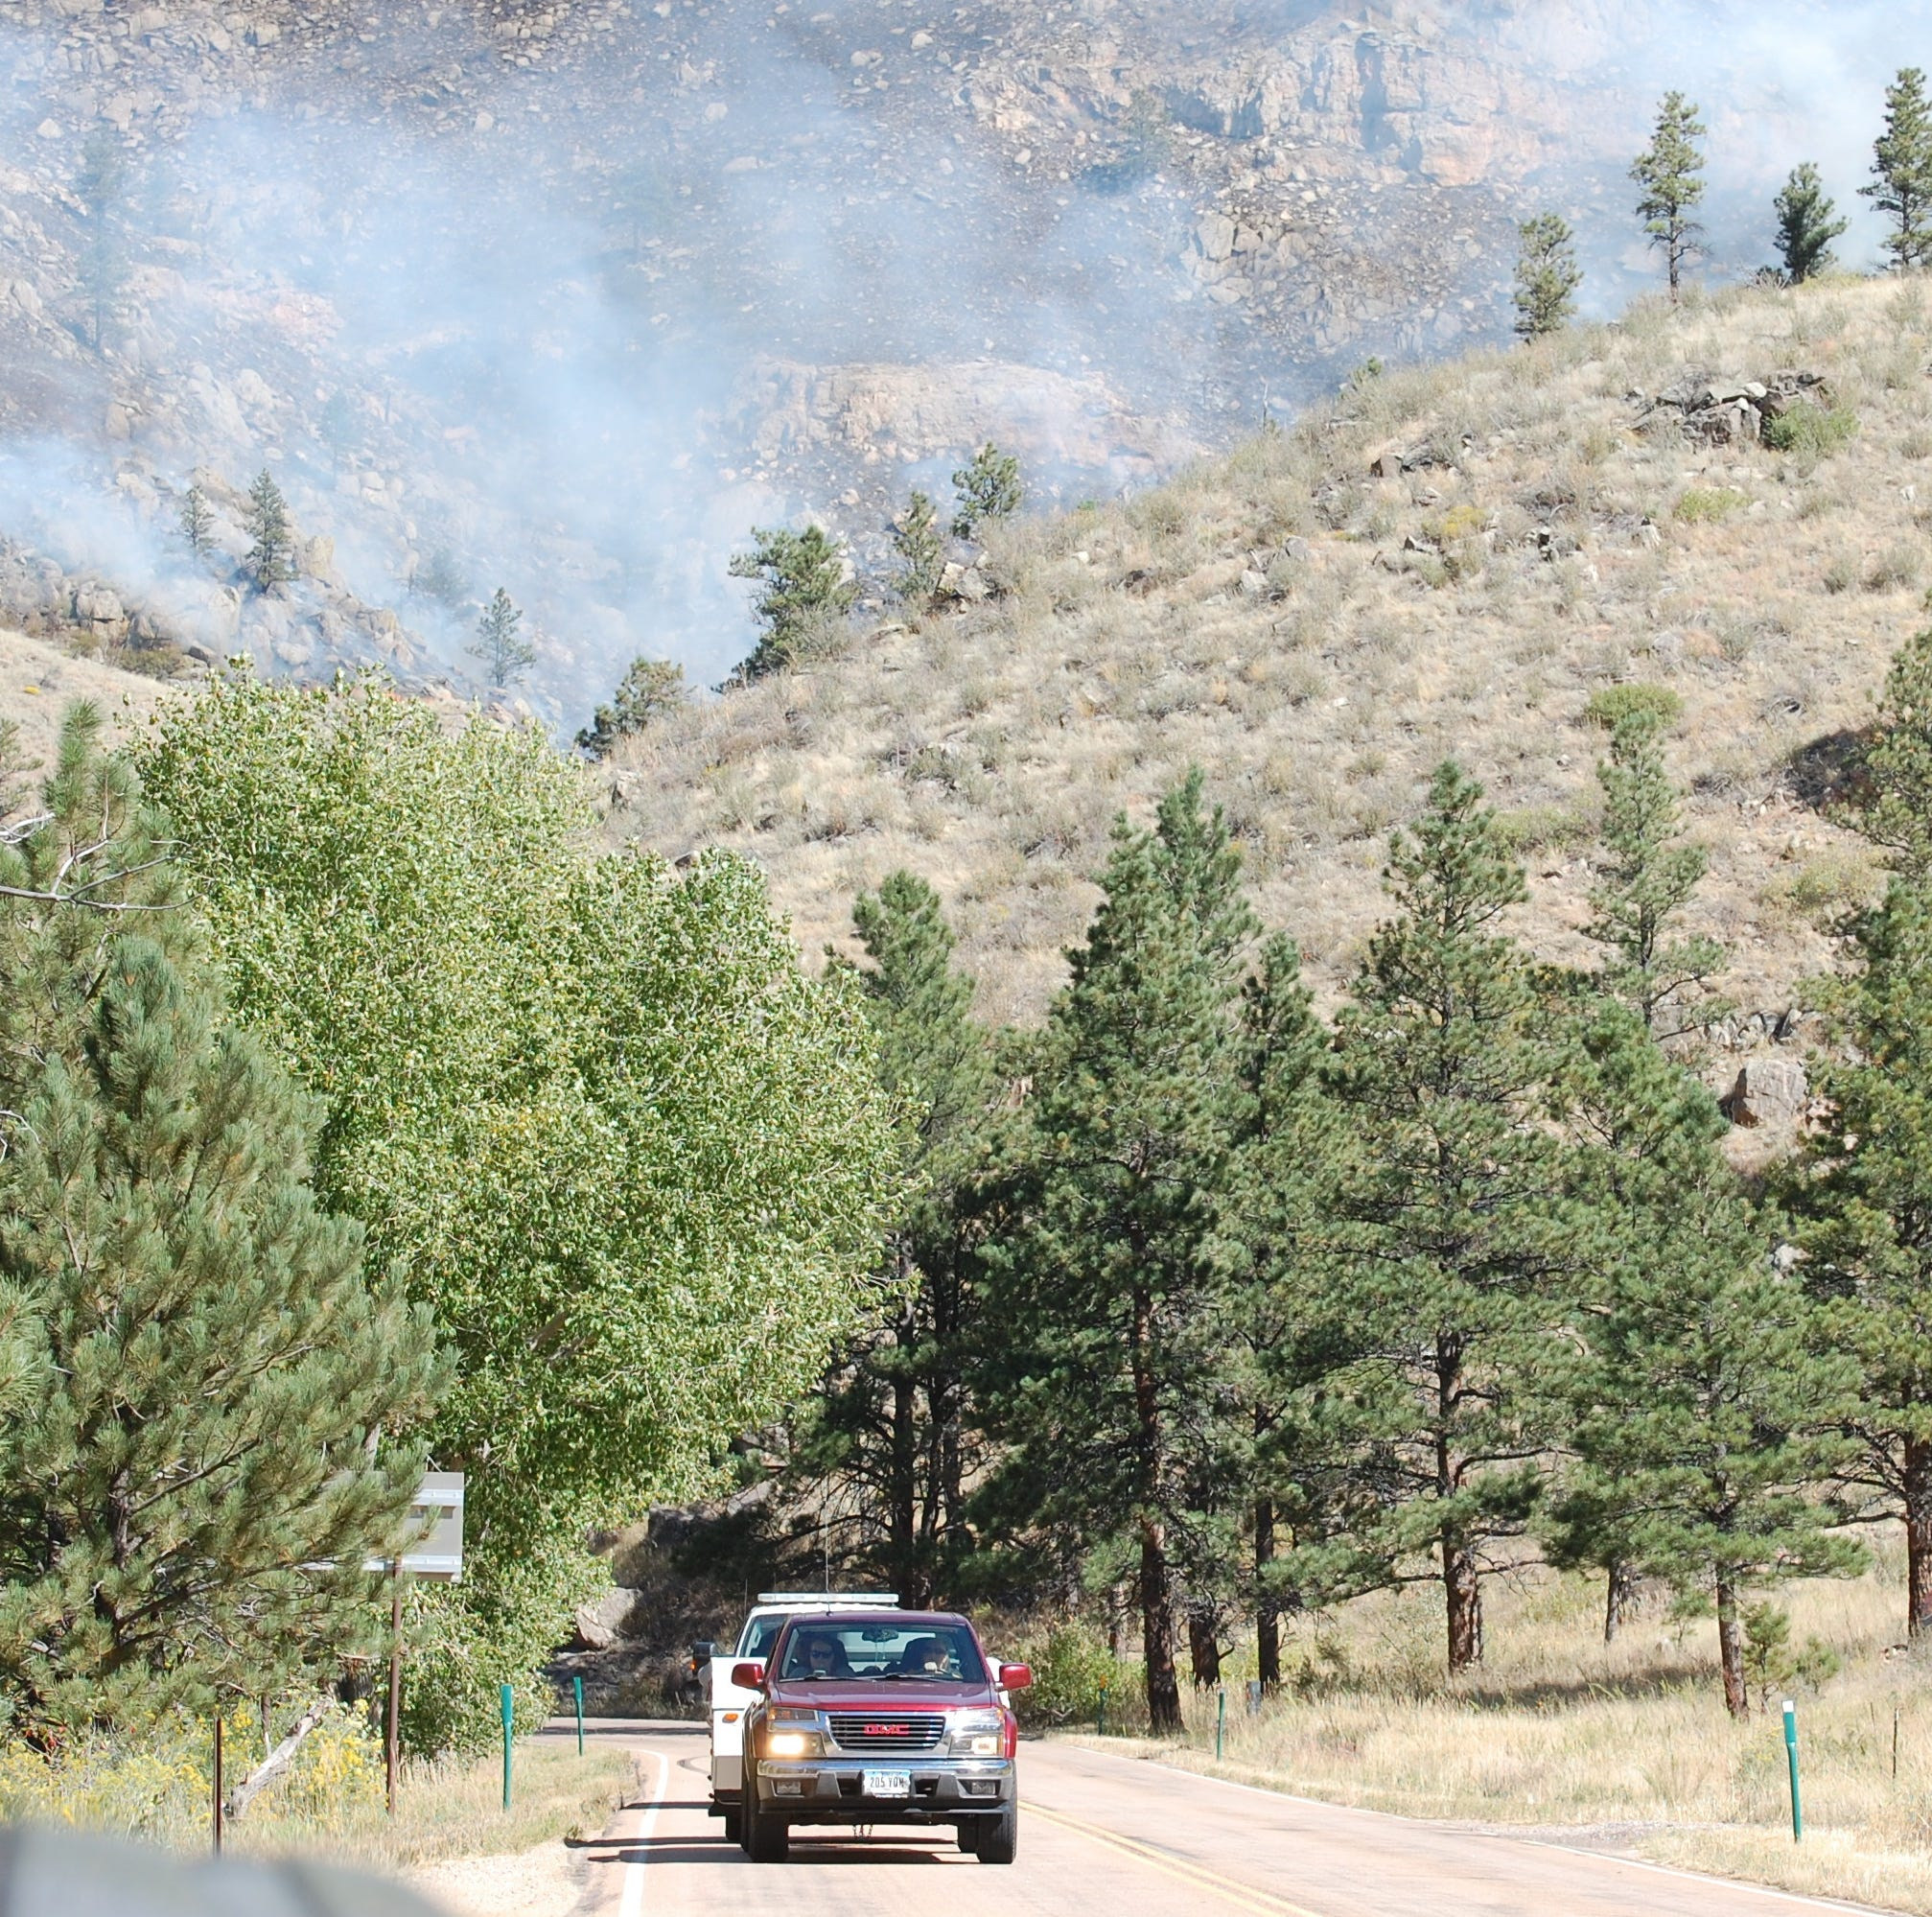 Colorado wildfires: As Seaman Fire wanes, others loom larger